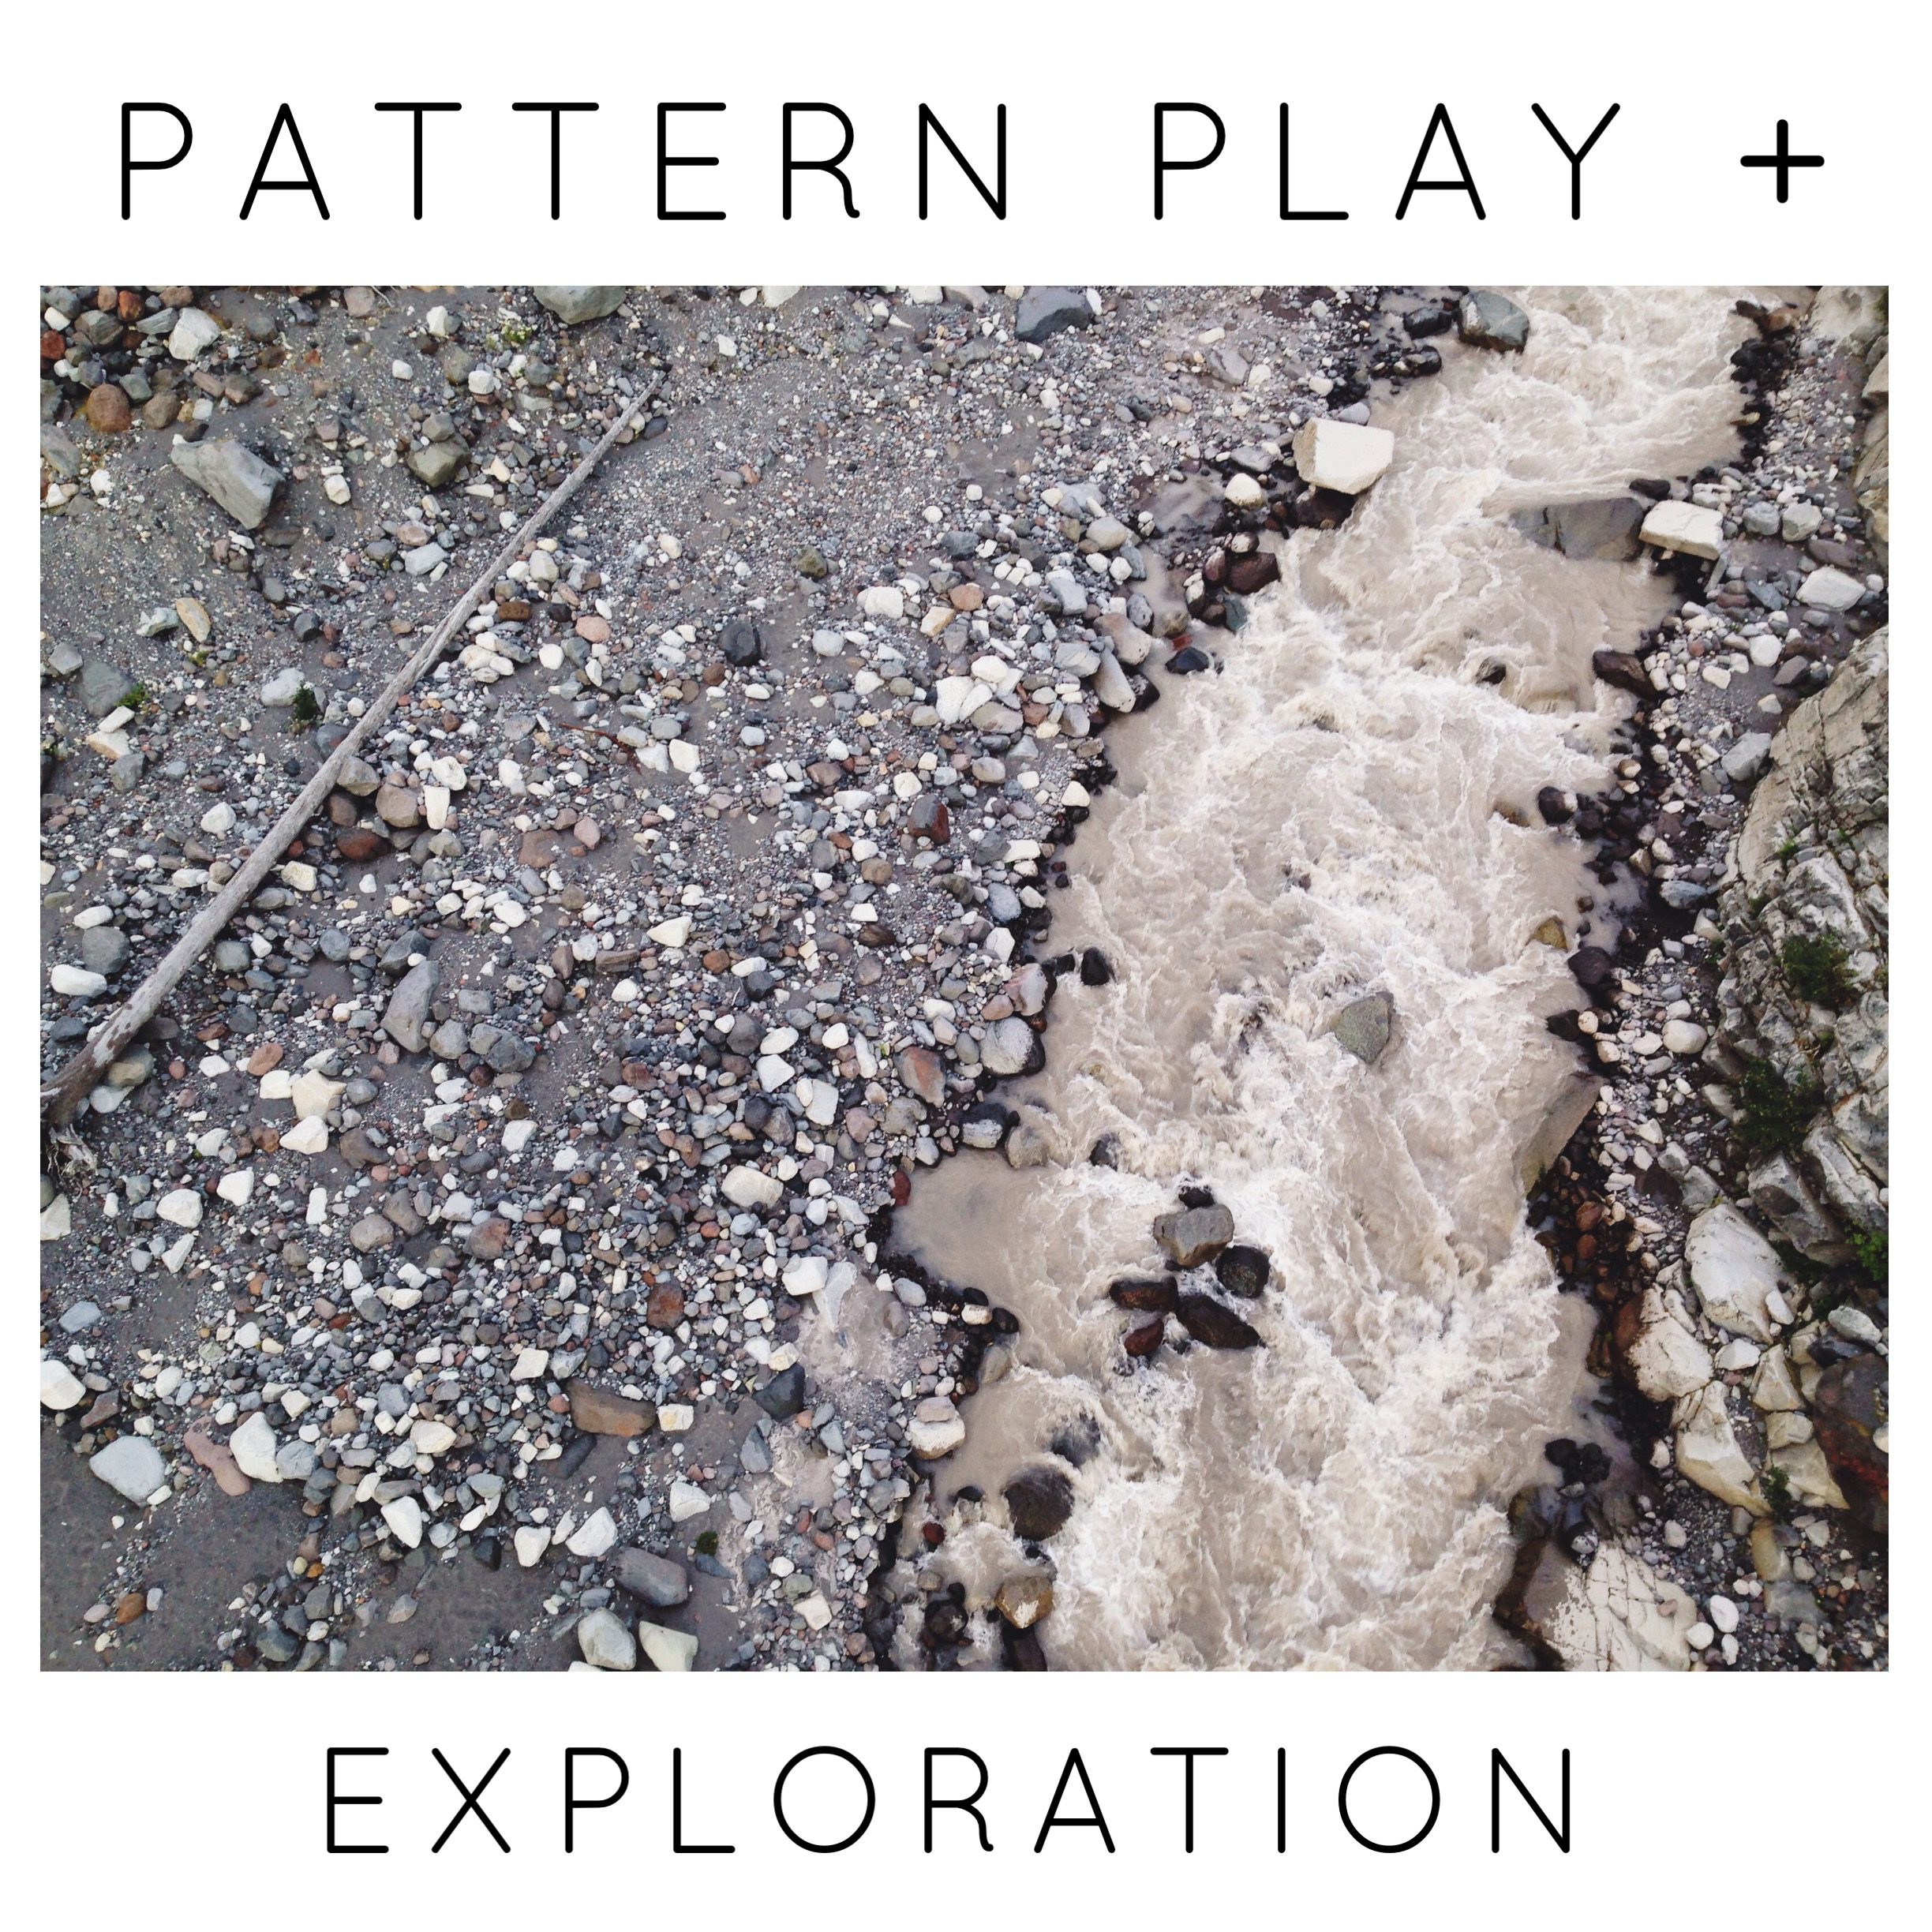 patternplay+exploration